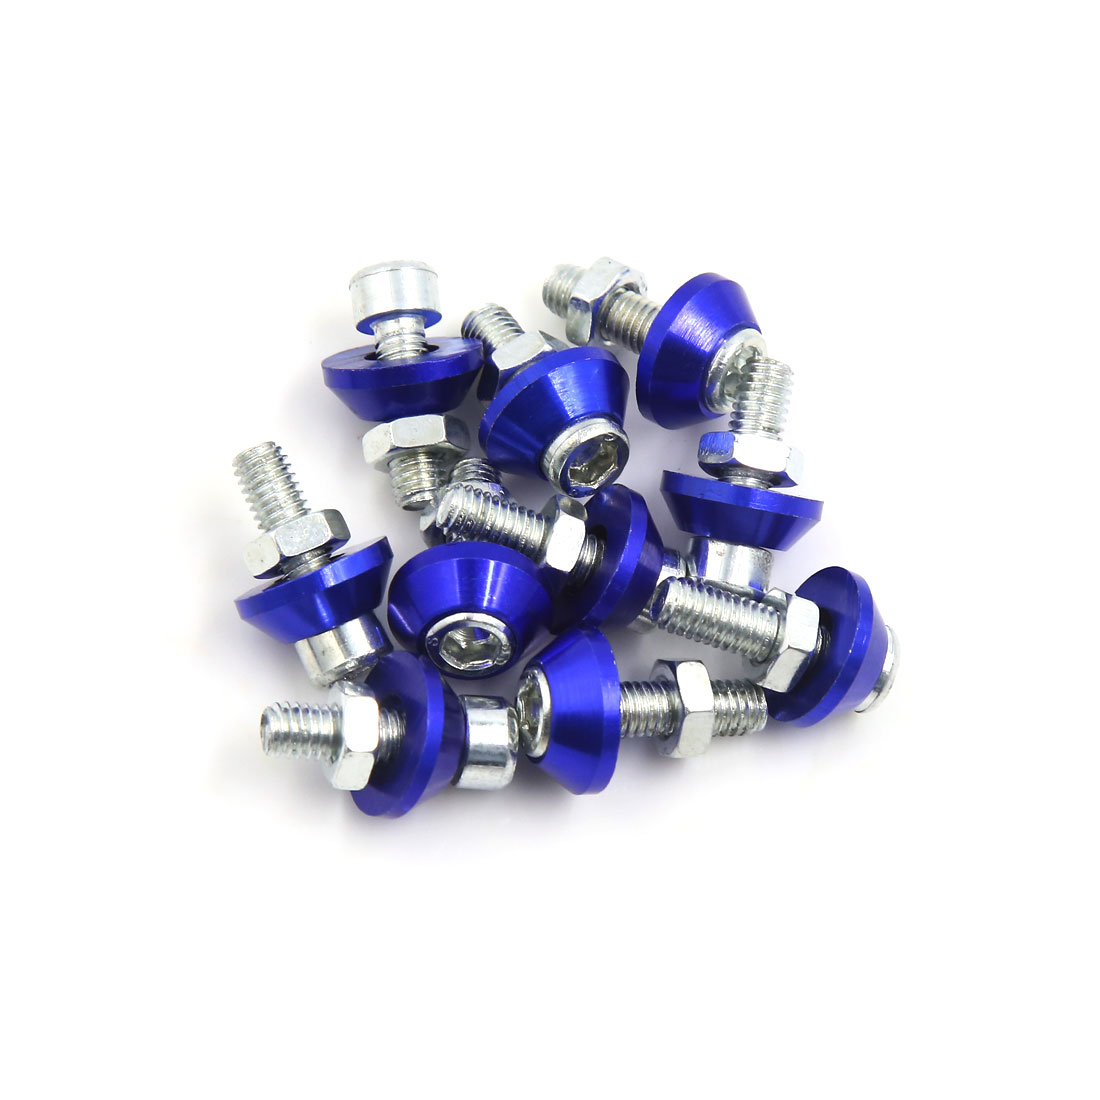 10 Pcs 6mm Thread Dia Blue Motorcycle Car Decorative License Plate Bolts Screws